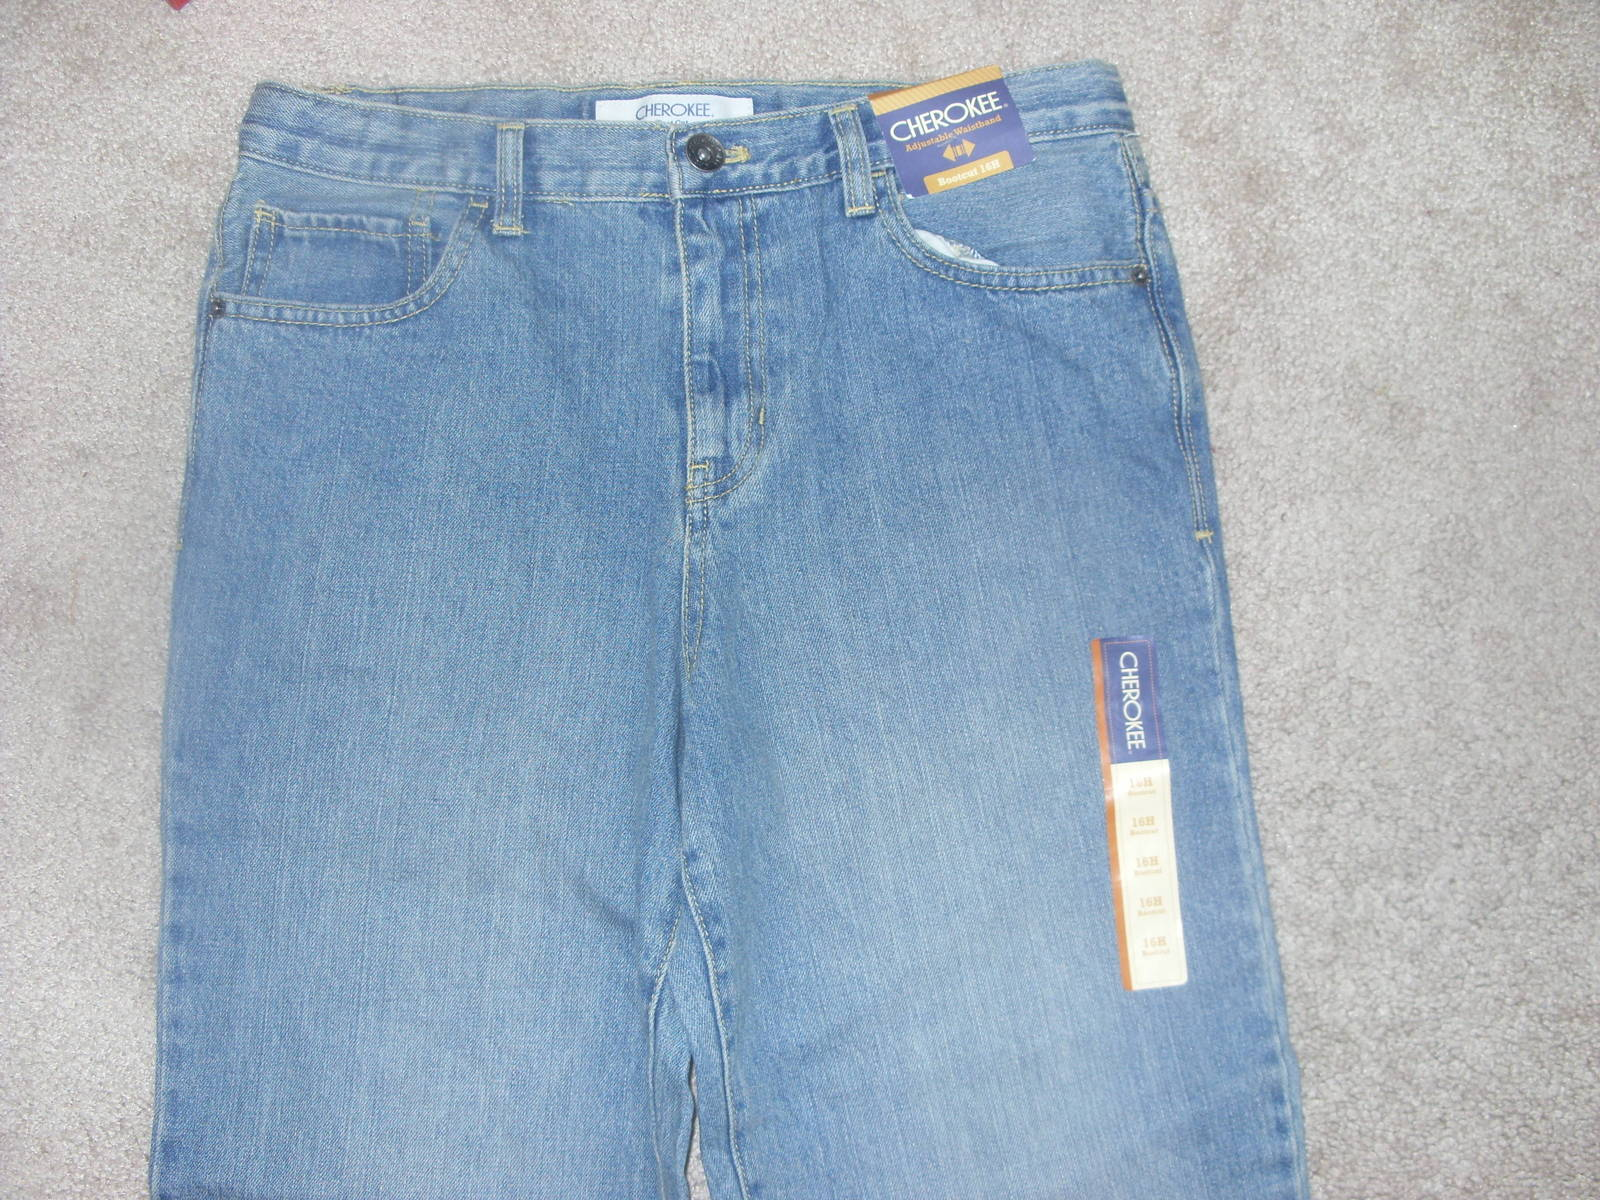 Primary image for Womens Cherokee Bootcut Blue Jeans adjustable waistband size 16H New with Tags!